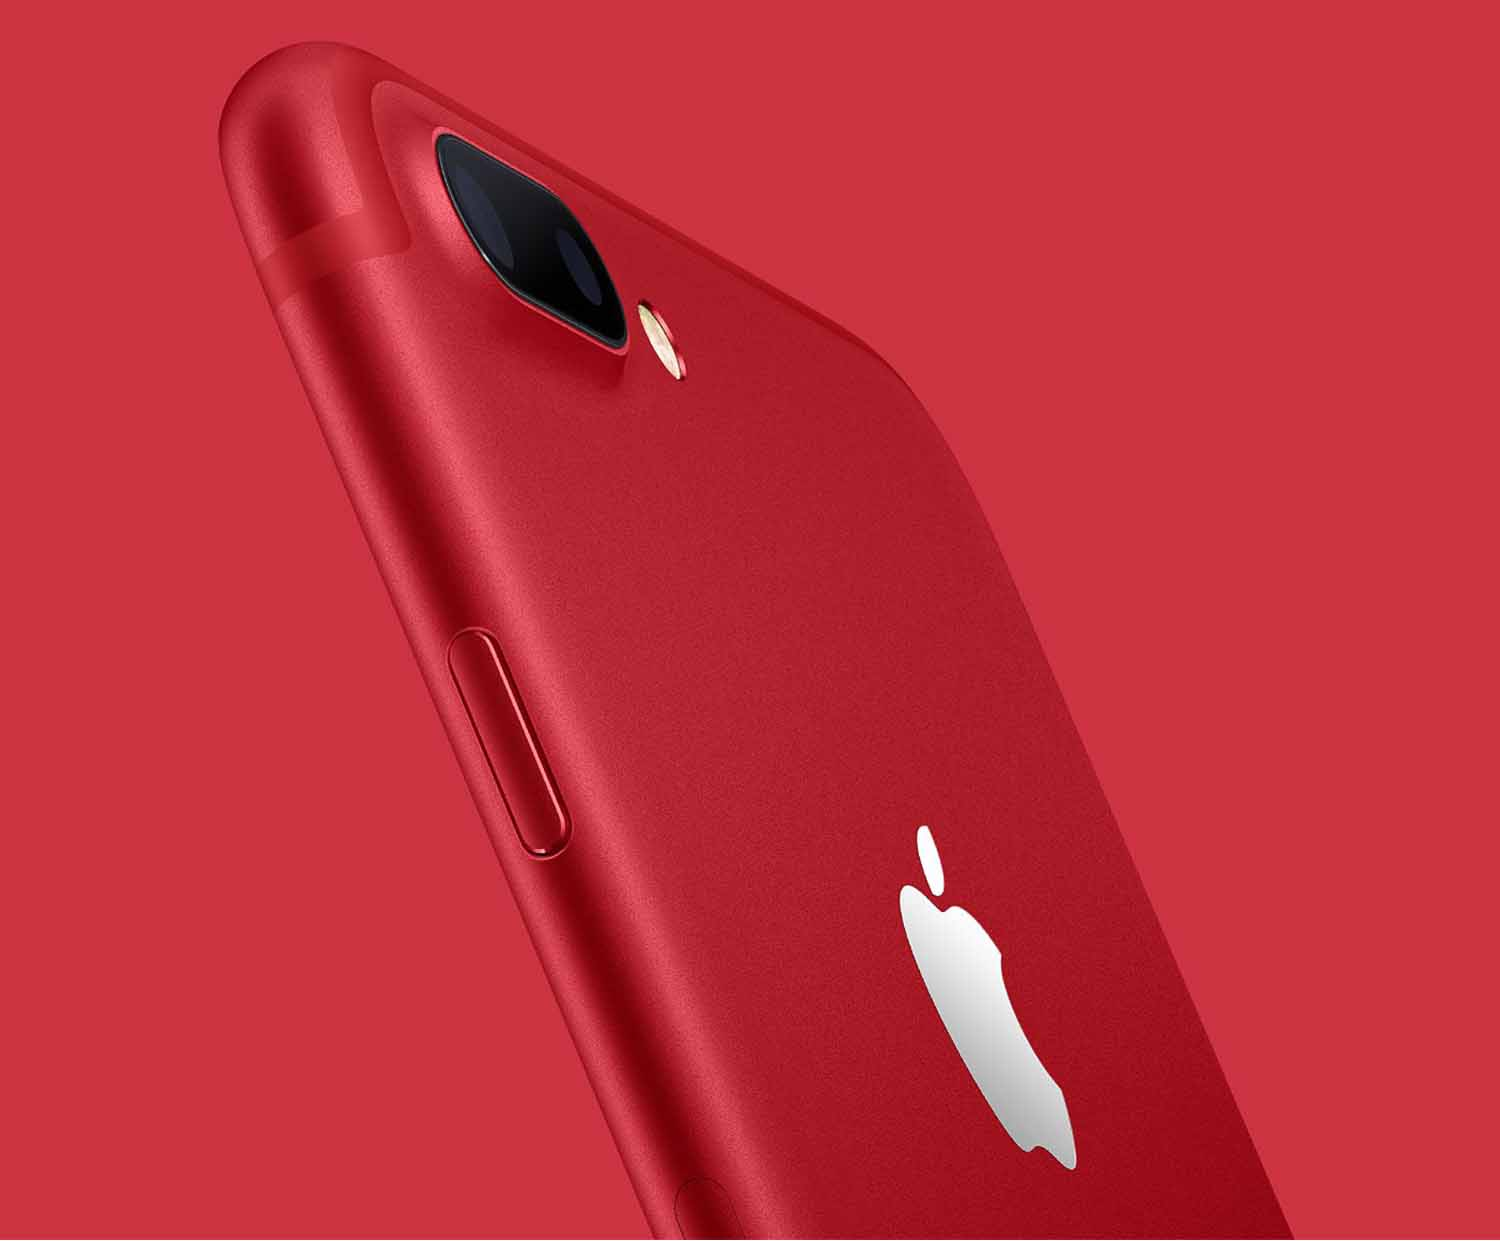 apple iphone 7 plus 256 gb product red. Black Bedroom Furniture Sets. Home Design Ideas